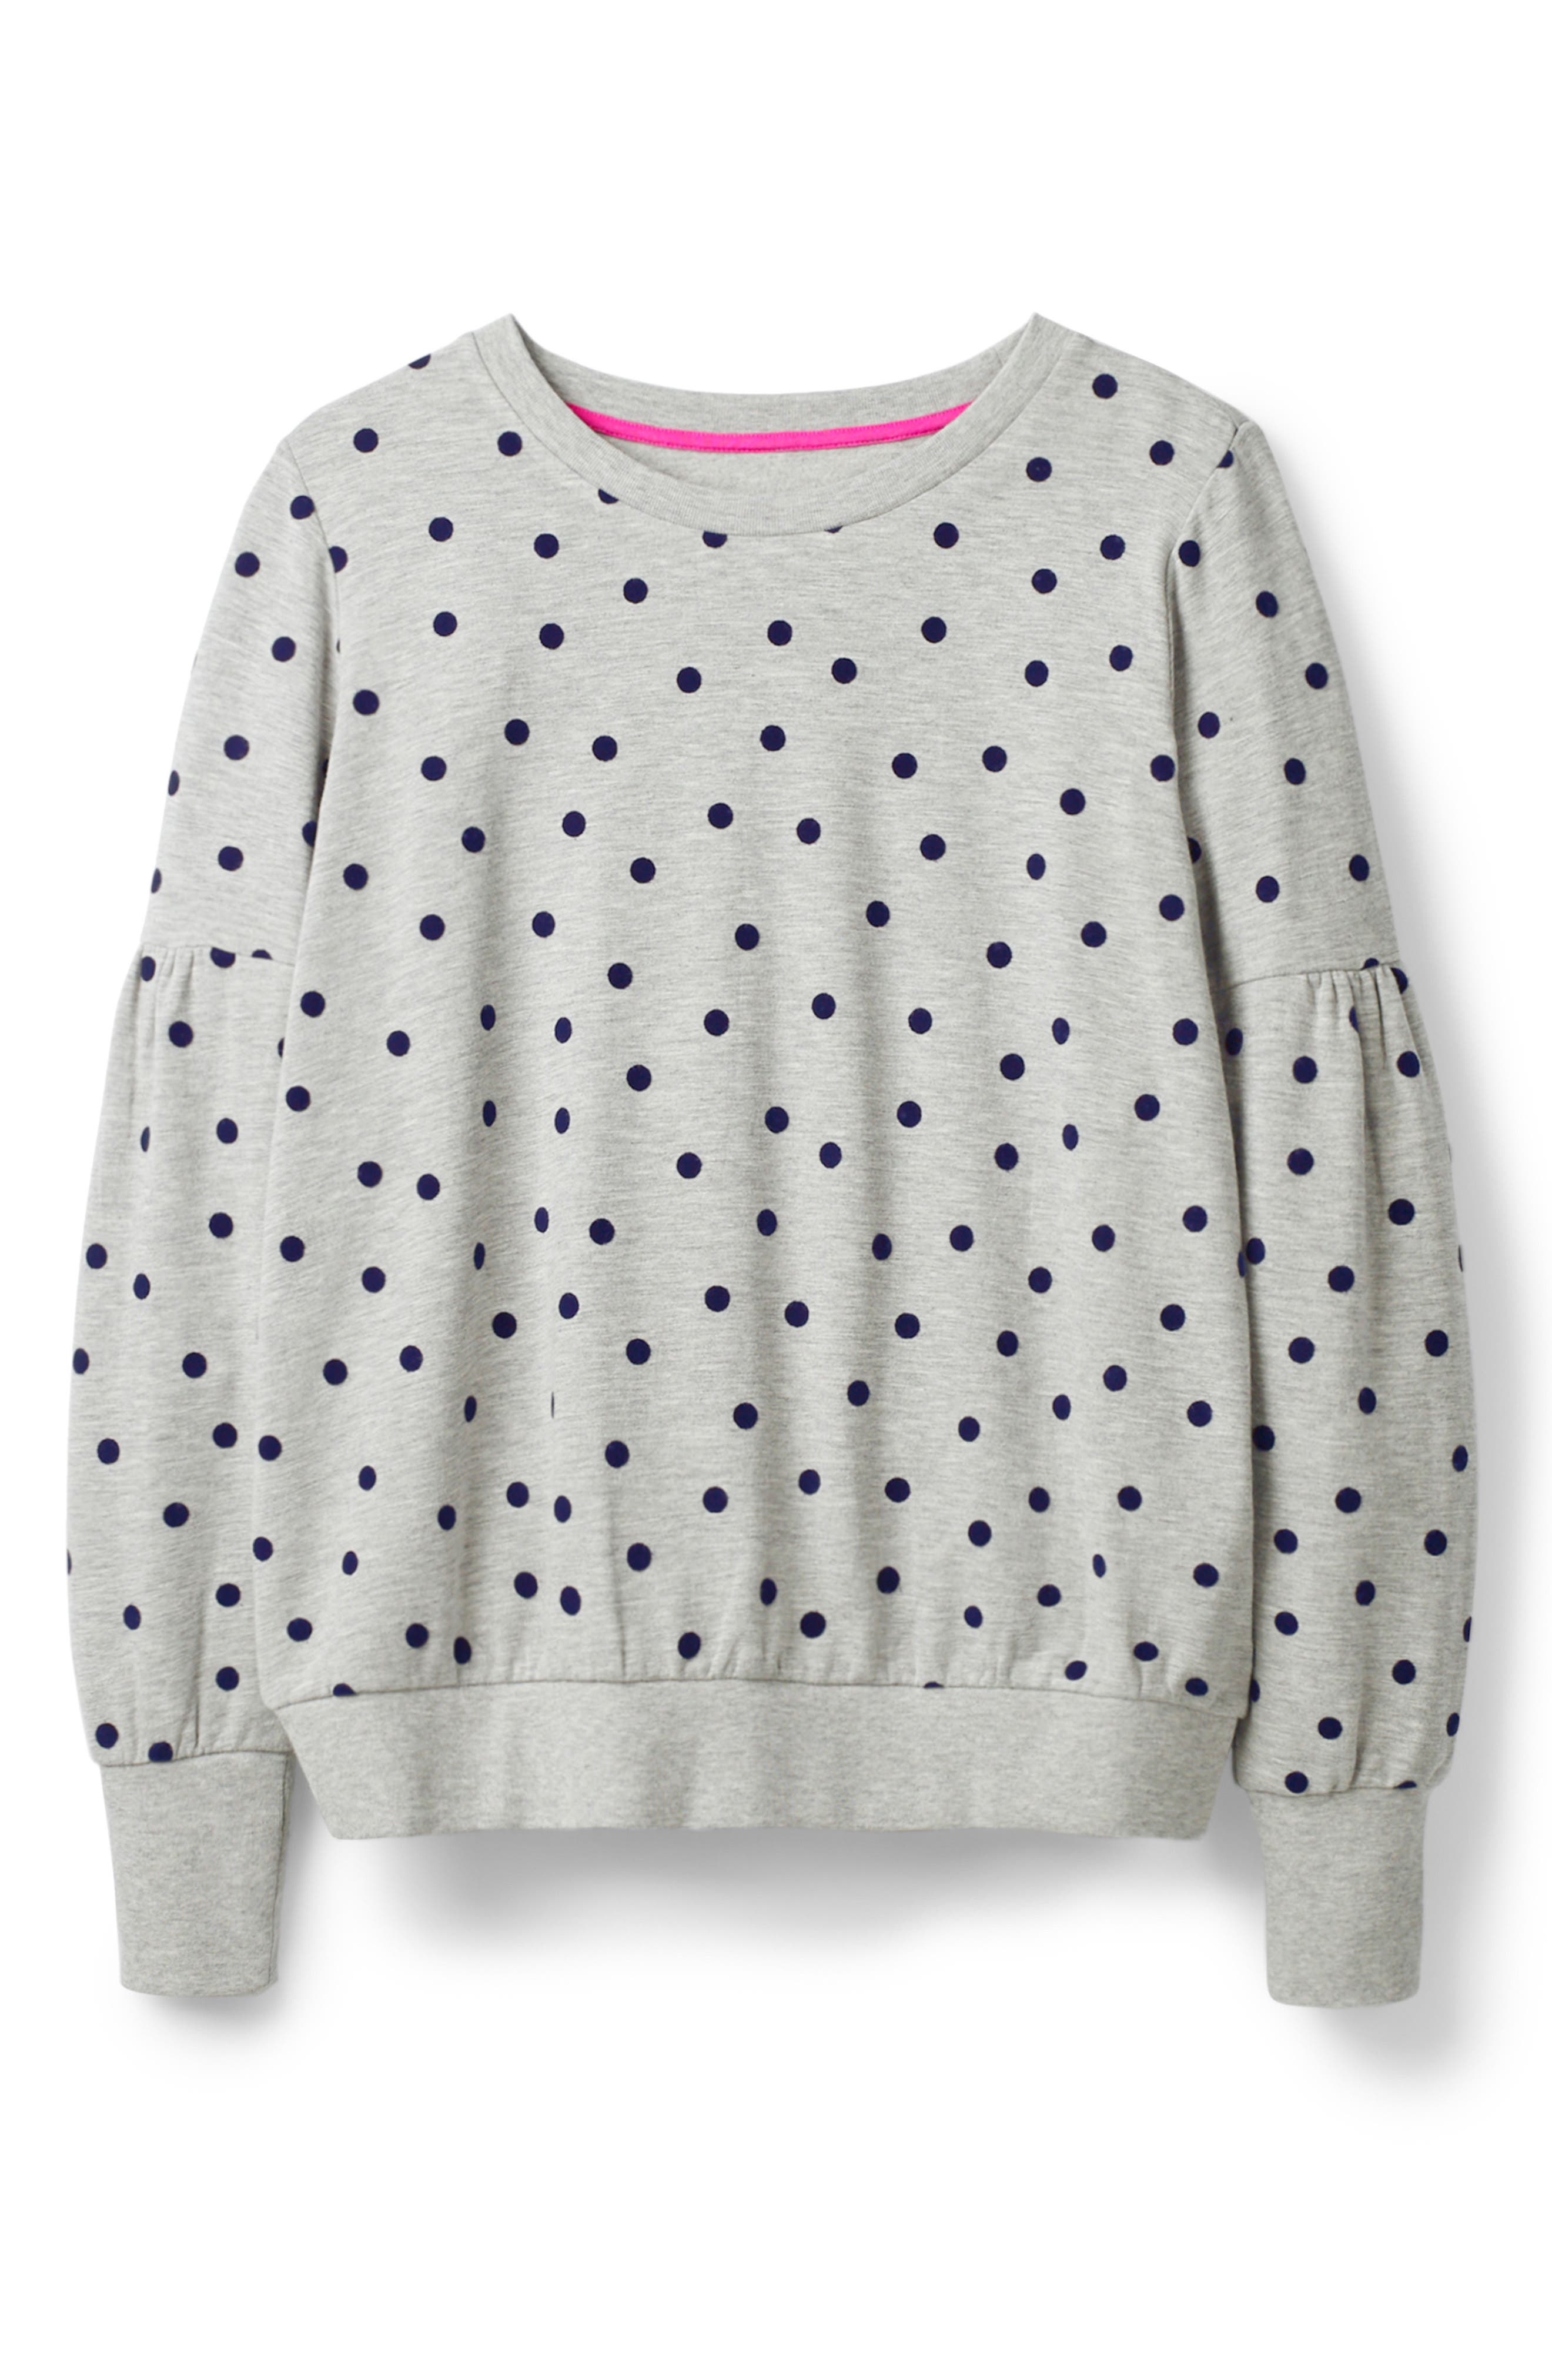 Renee Sweatshirt,                             Alternate thumbnail 5, color,                             GREY MARL FLOCKED SPOT